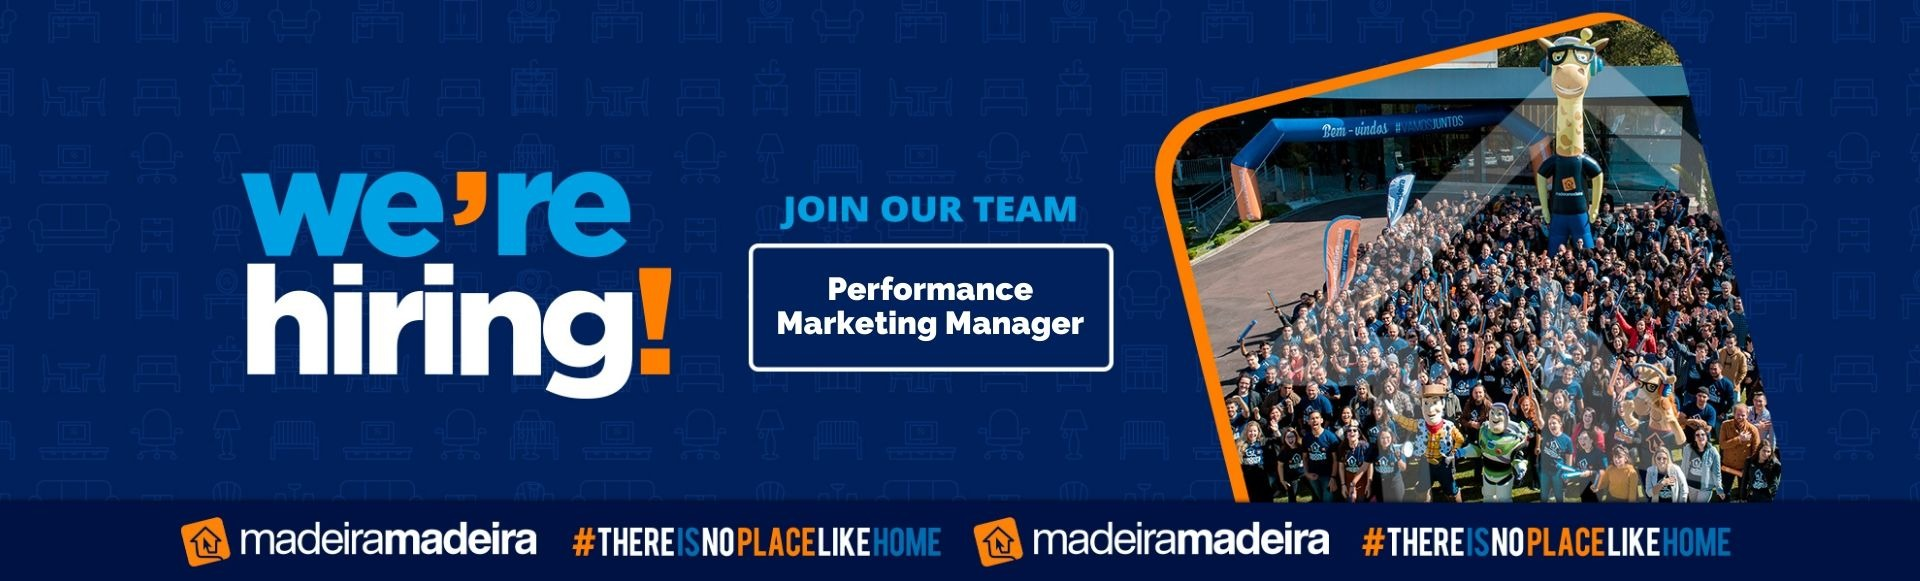 Performance Marketing Manager